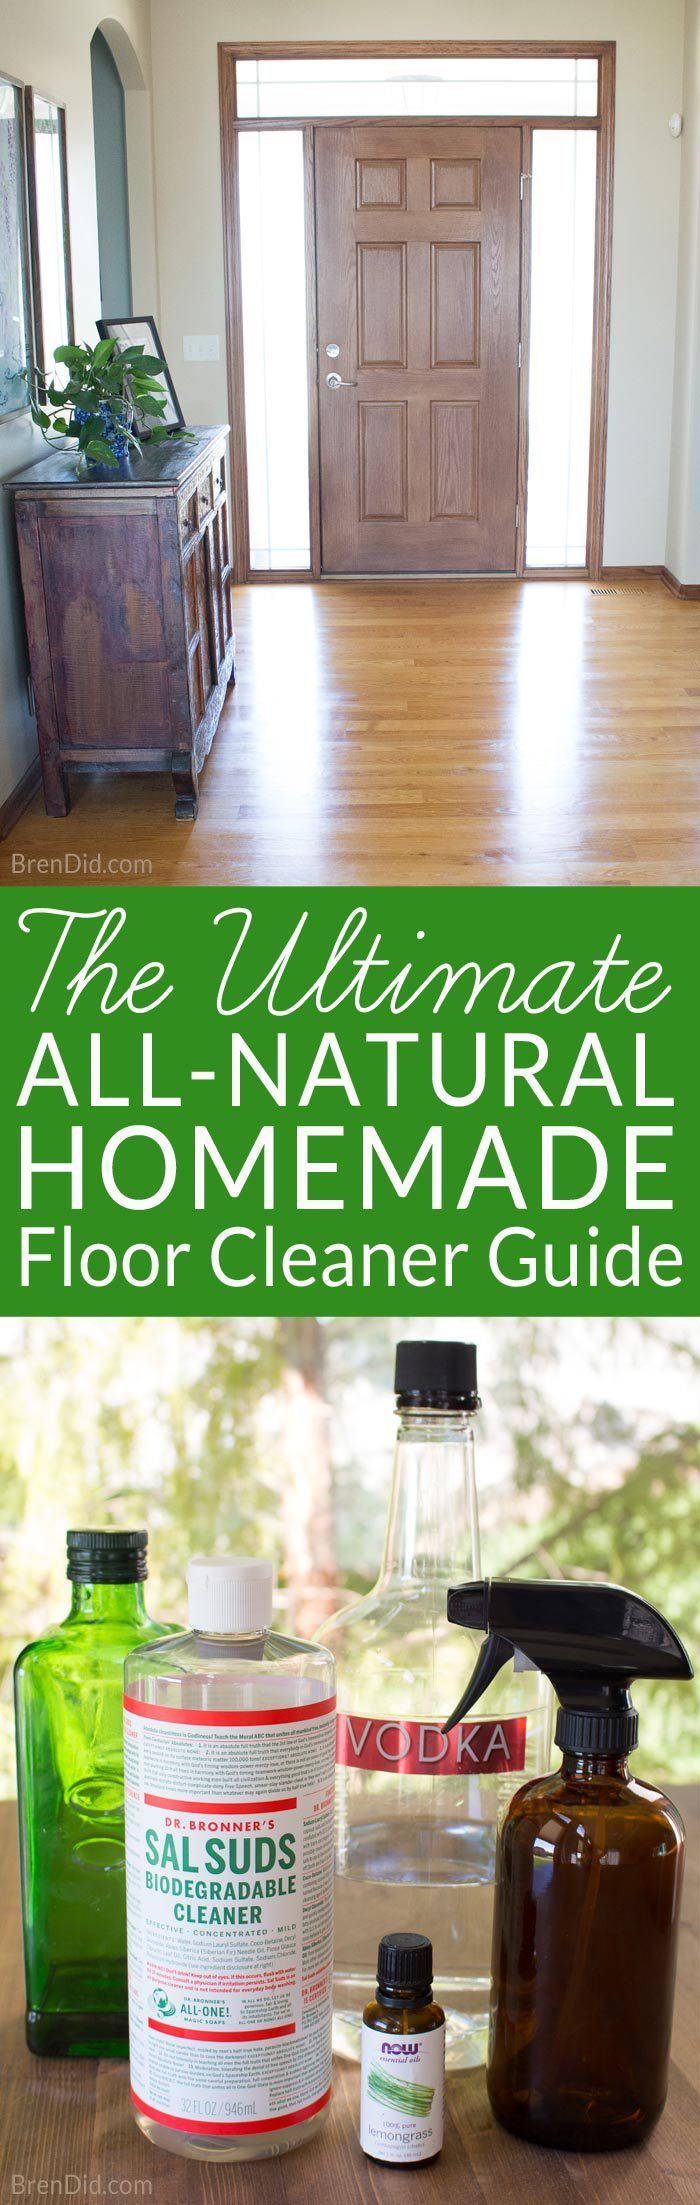 690 Best The Best Green Cleaning Tips And Tricks Images On